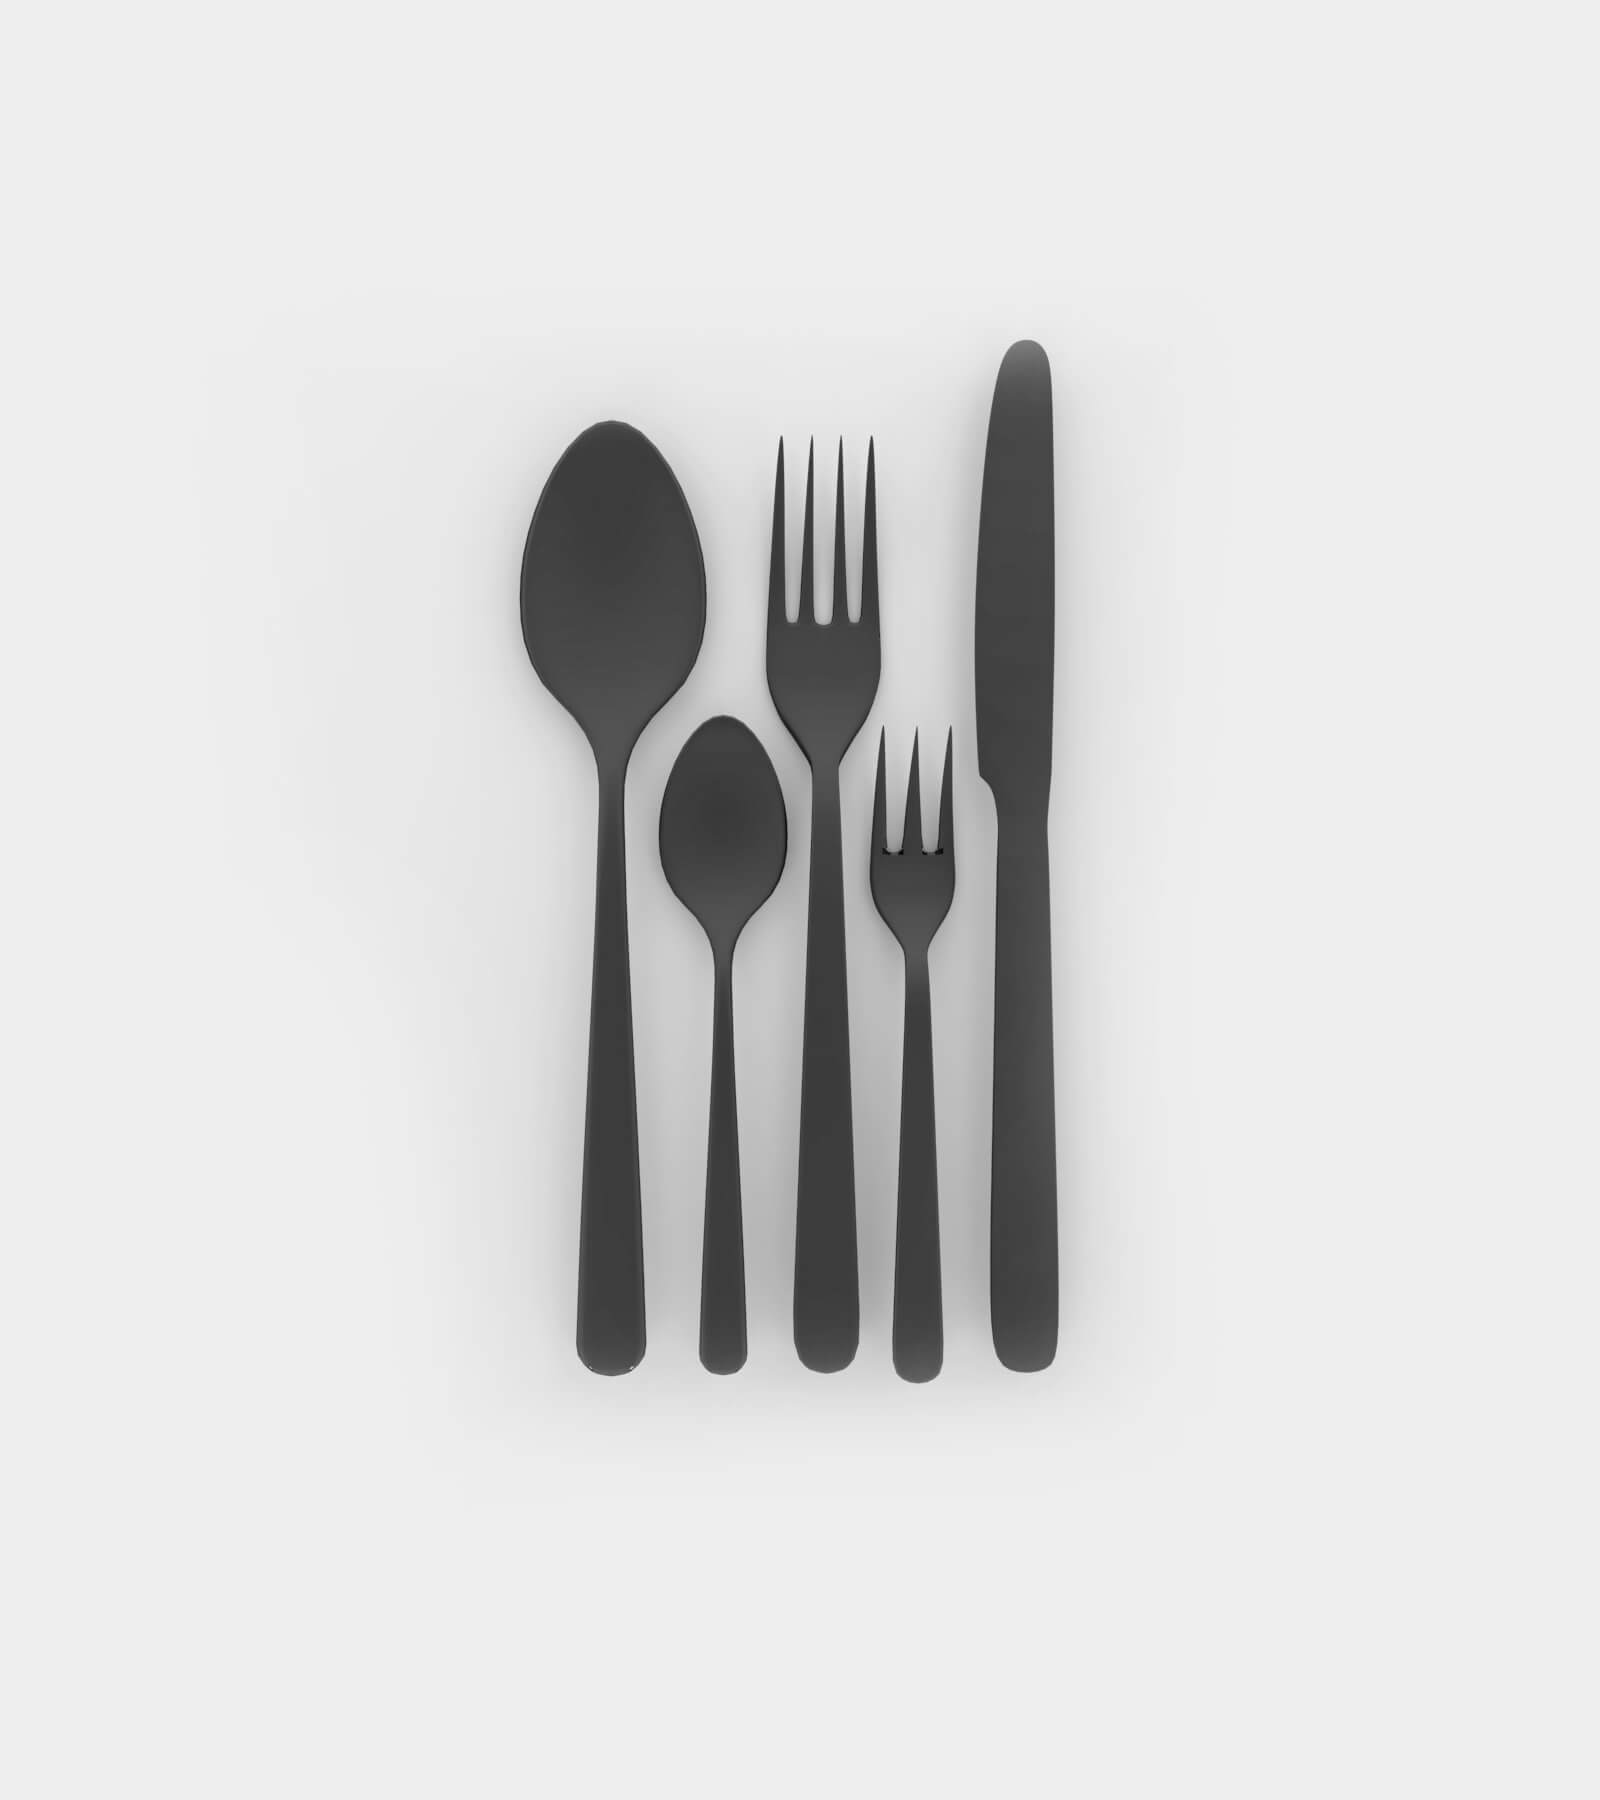 Cuttlery; spoon, knife and fork 2 - 3D Model